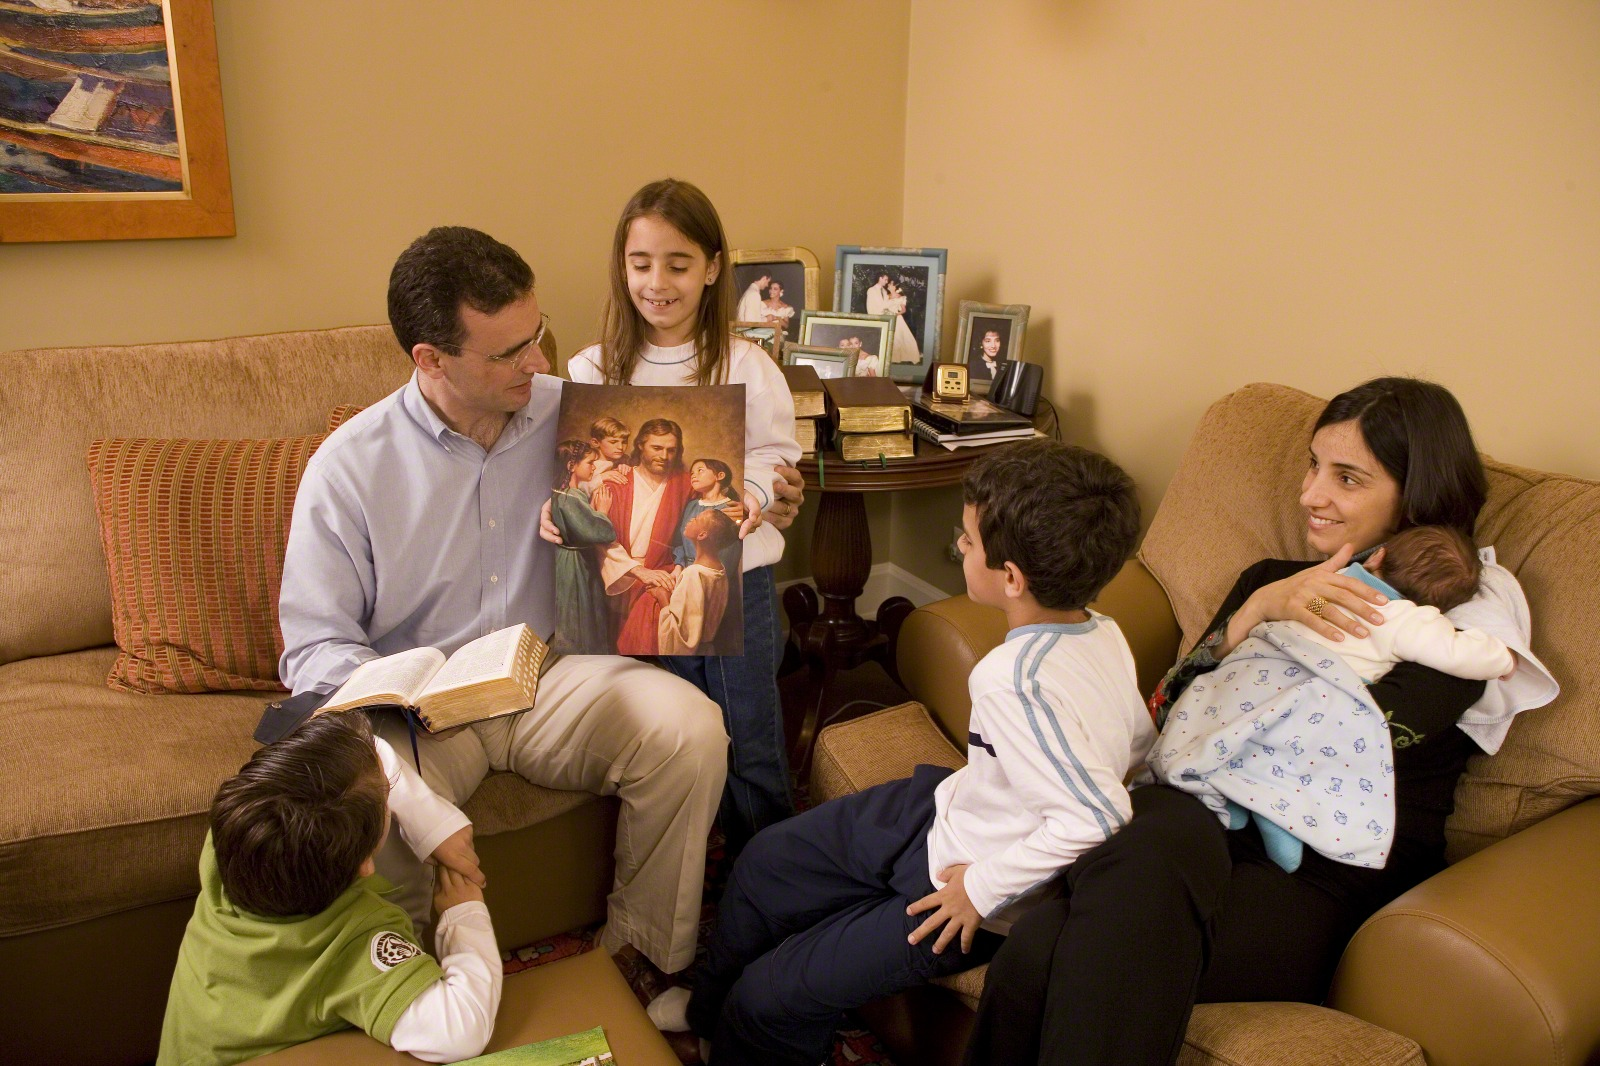 children helping others lds - photo #30